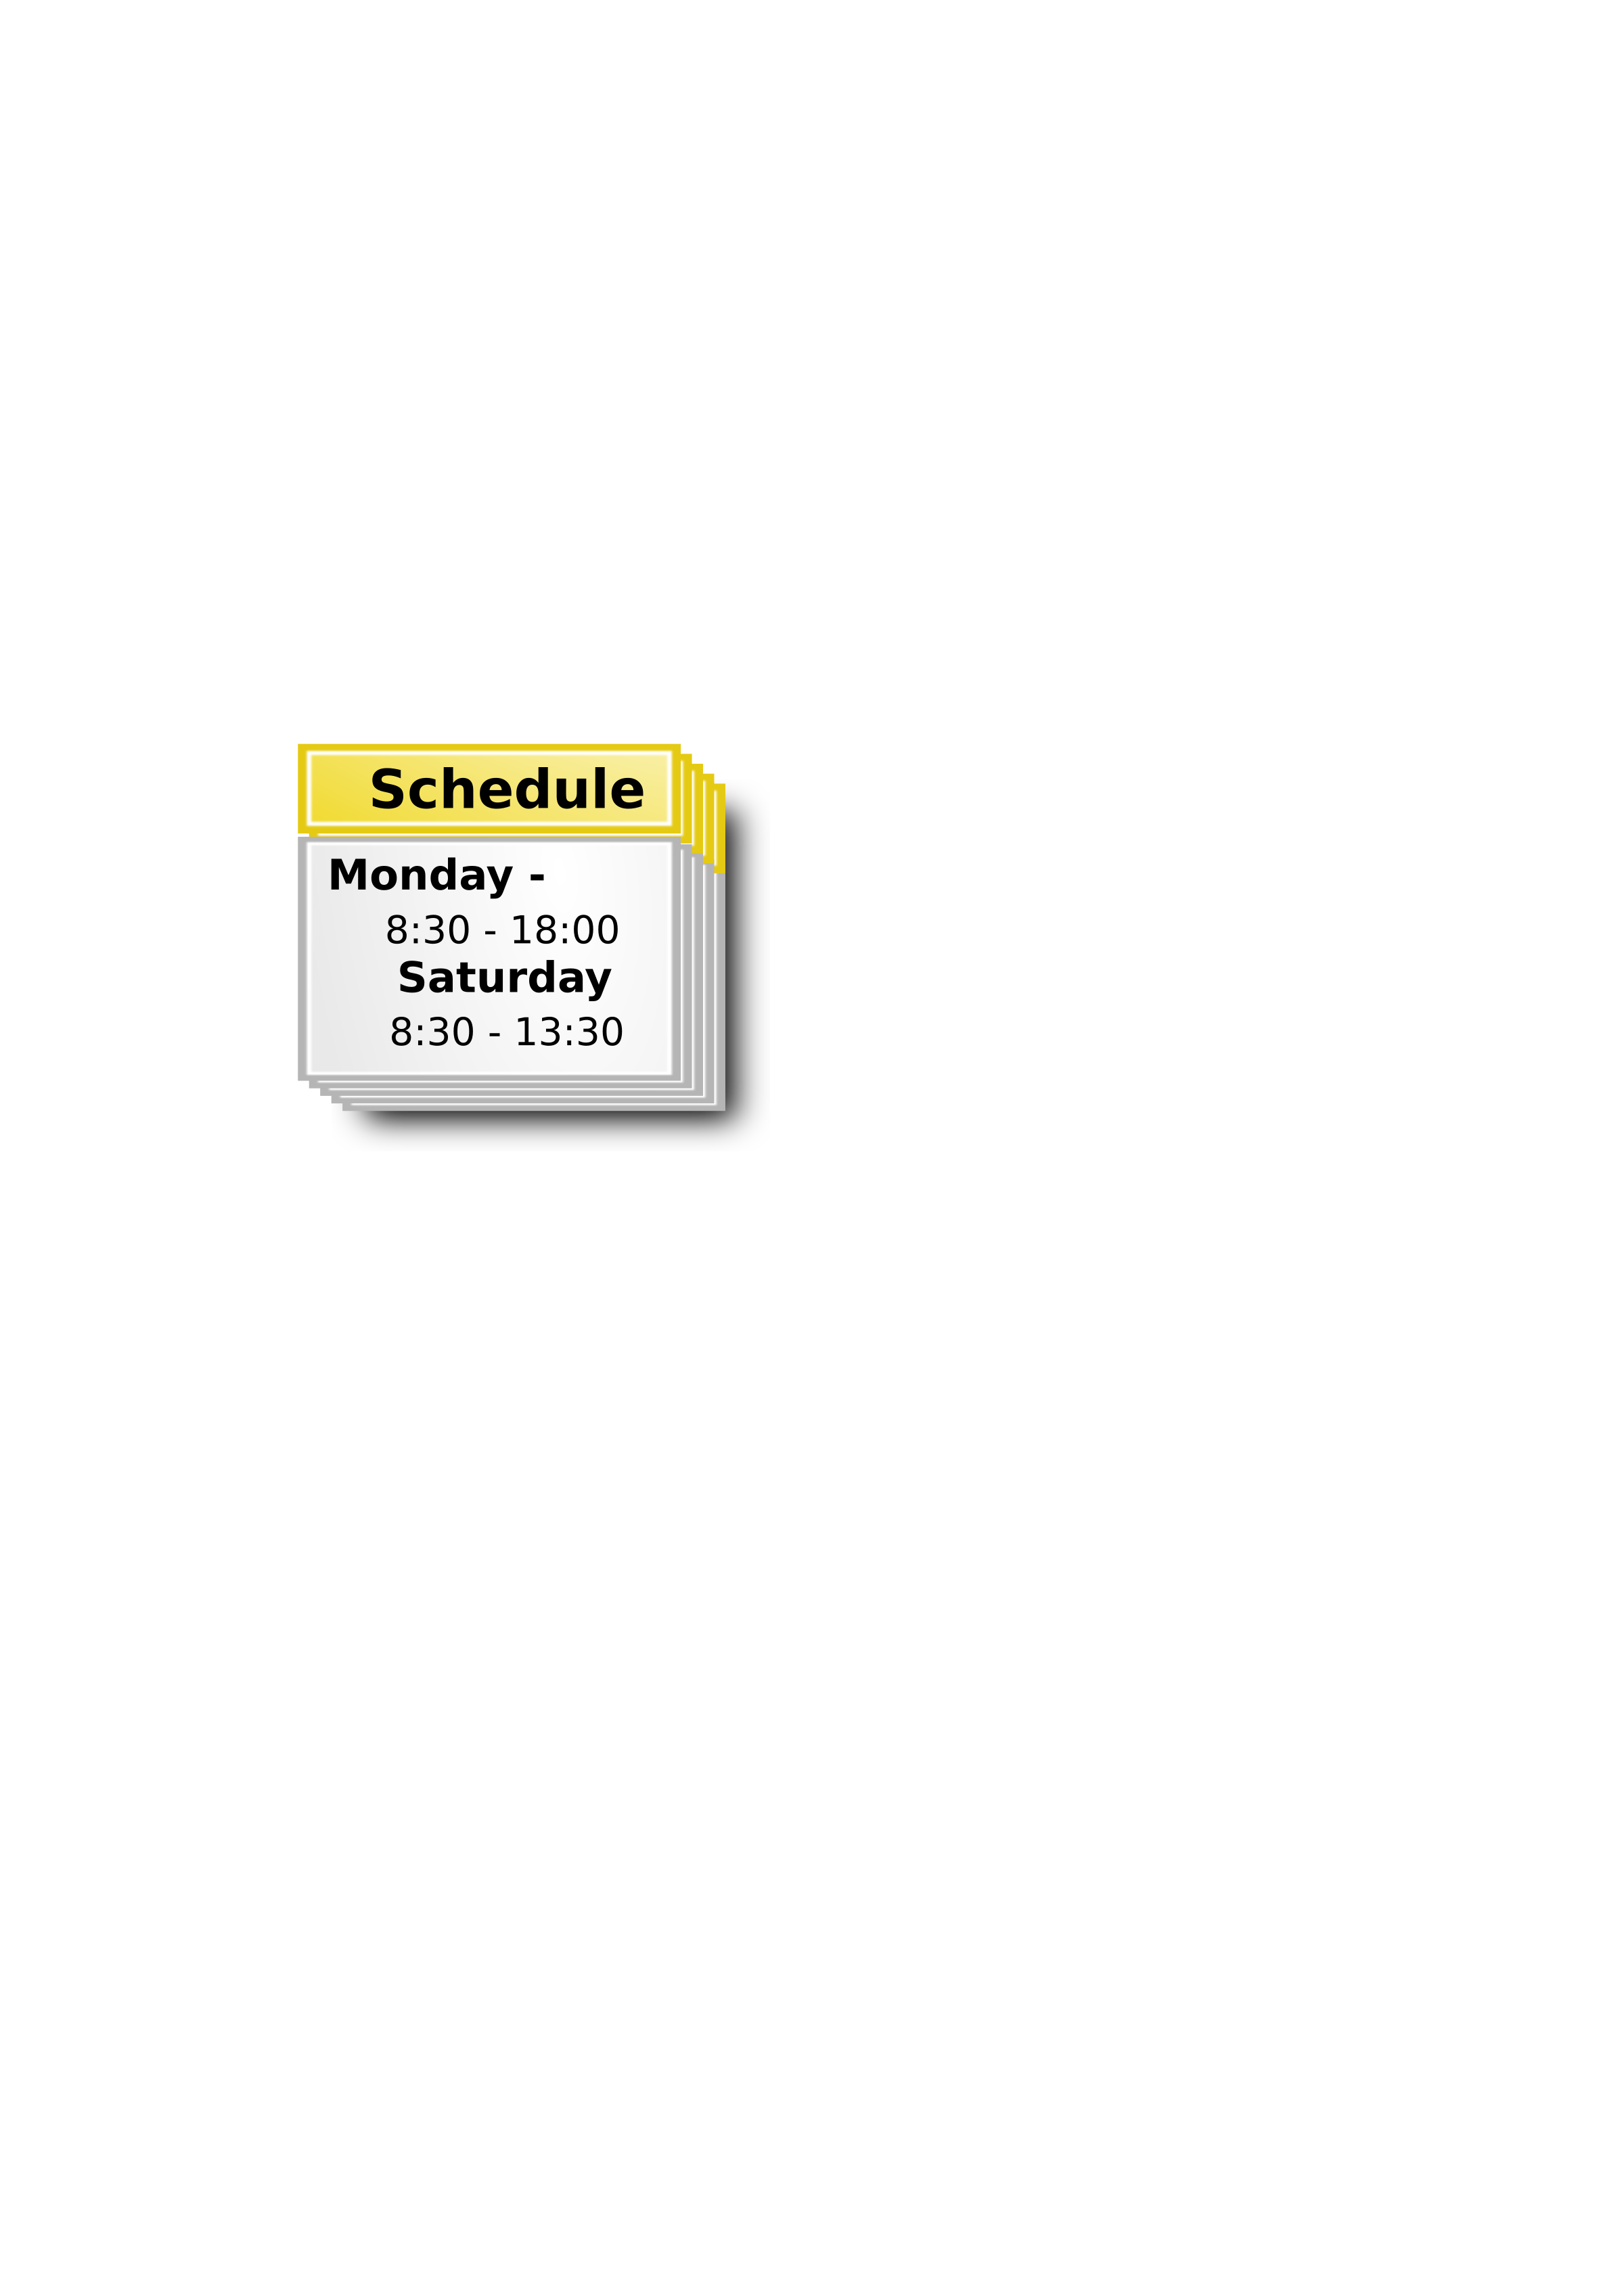 Schedule clipart sign. Big image png